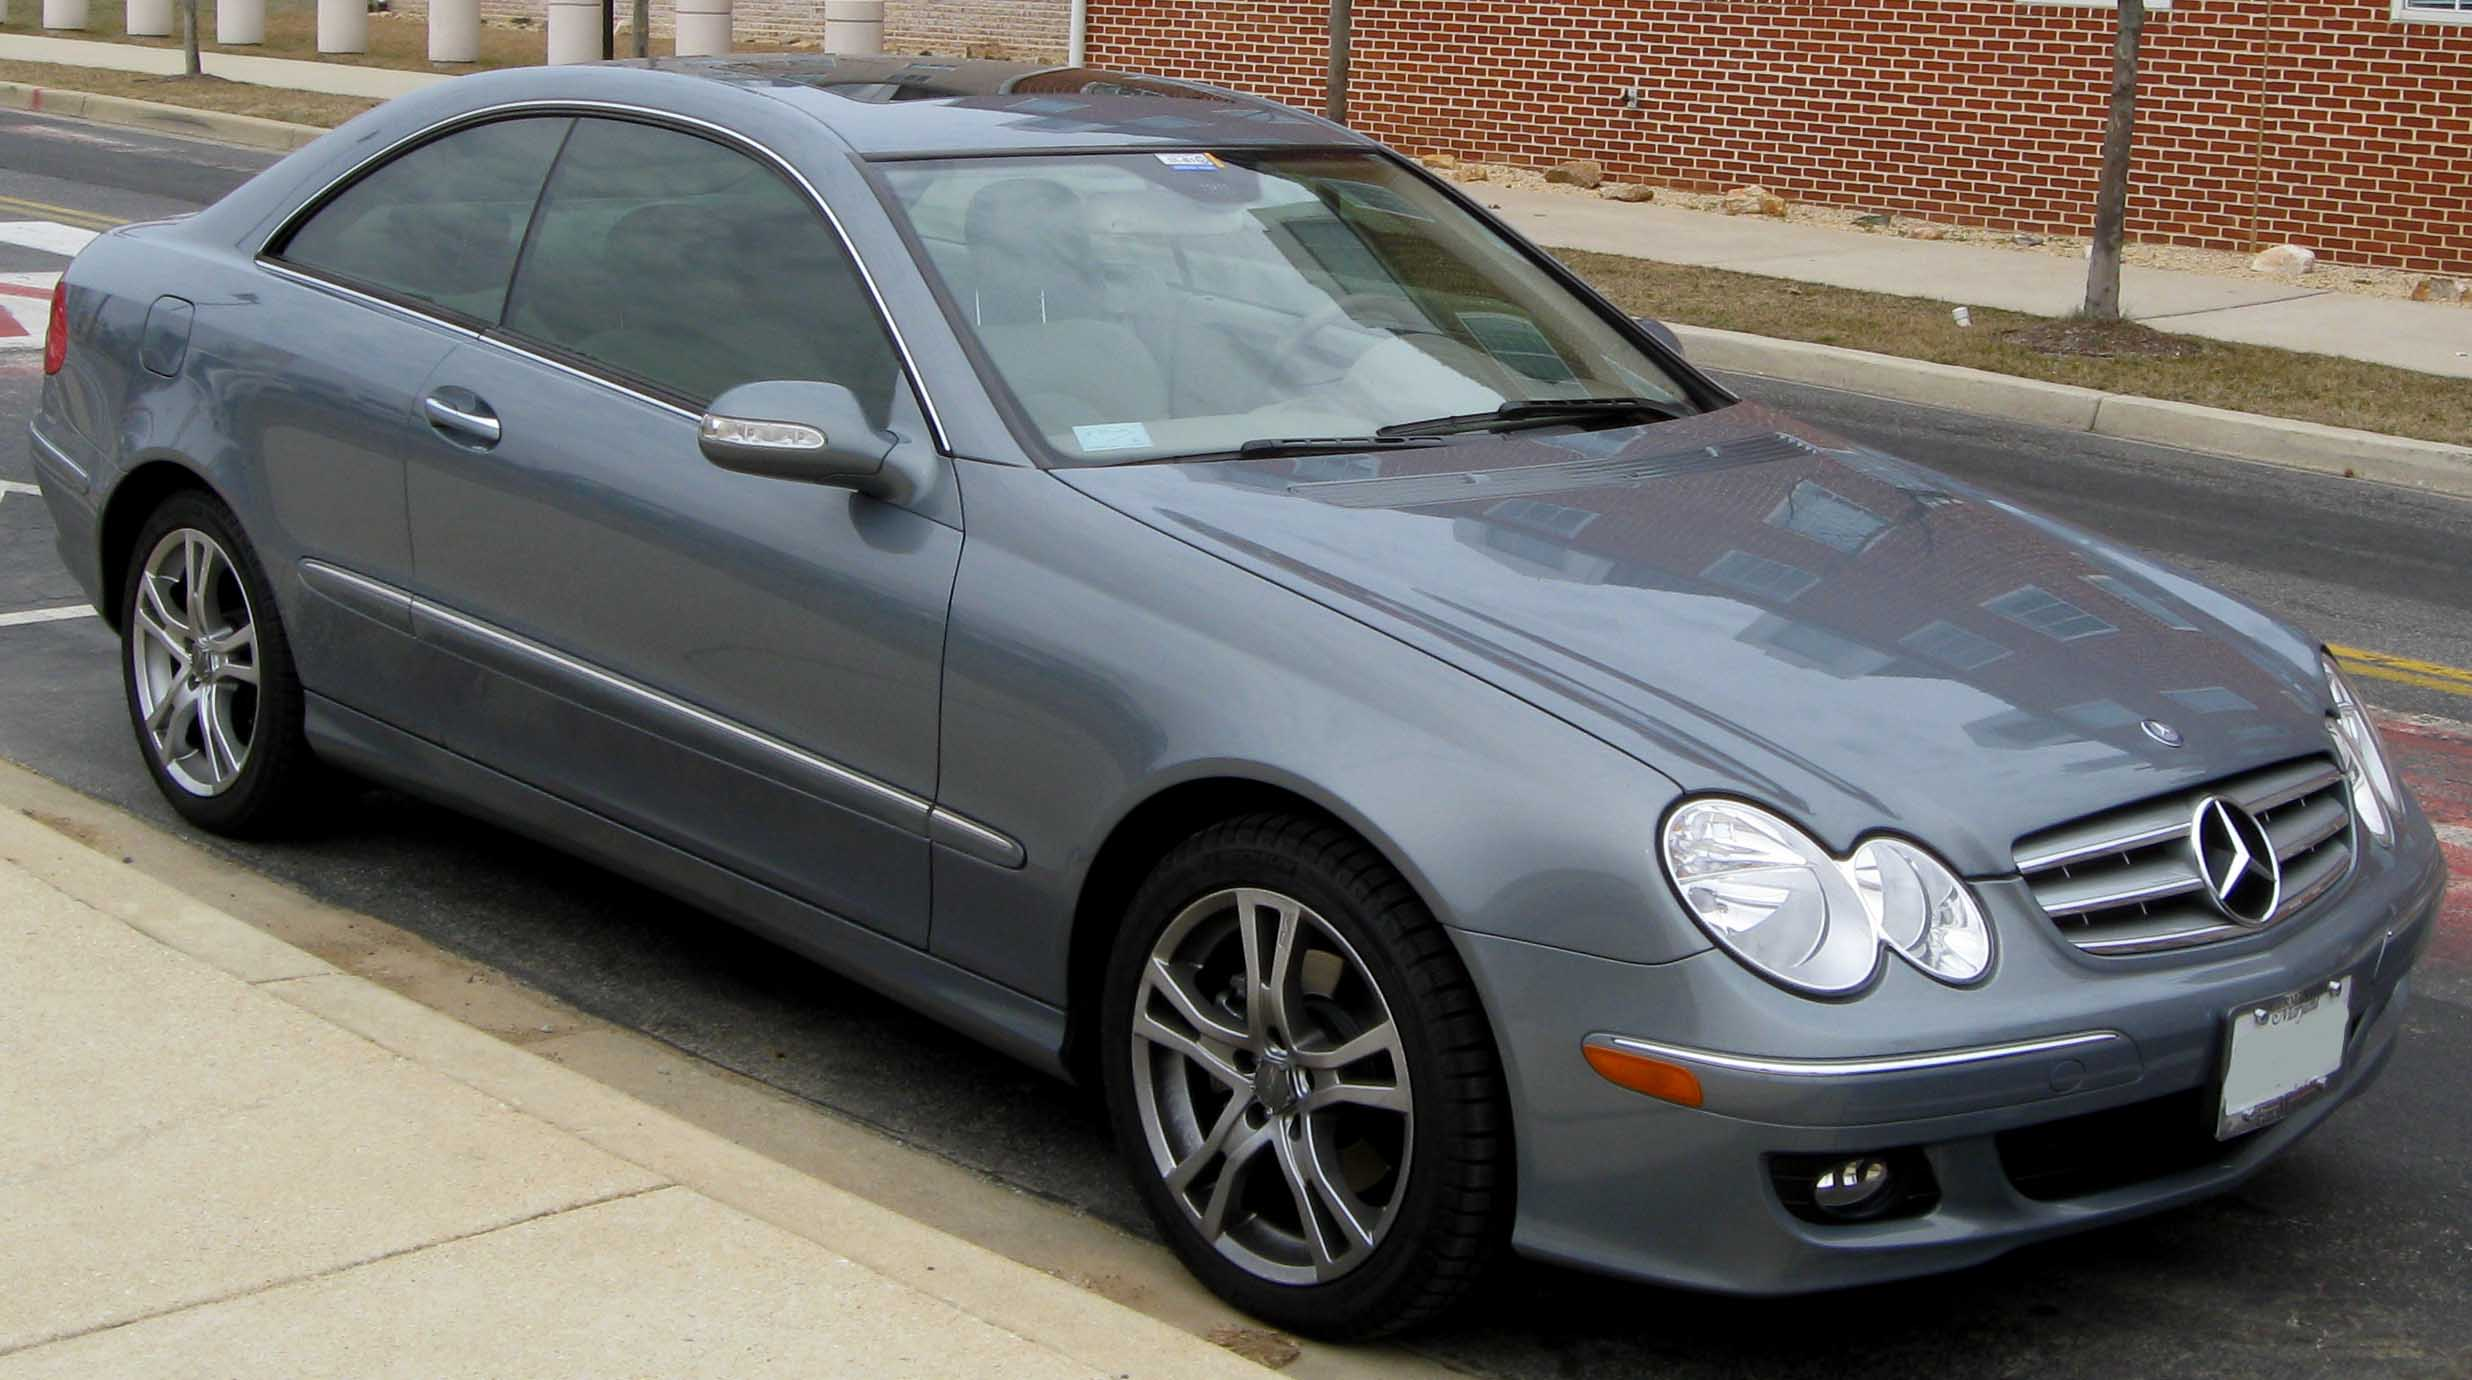 image gallery 2010 clk 350 amg For2010 Mercedes Benz Clk350